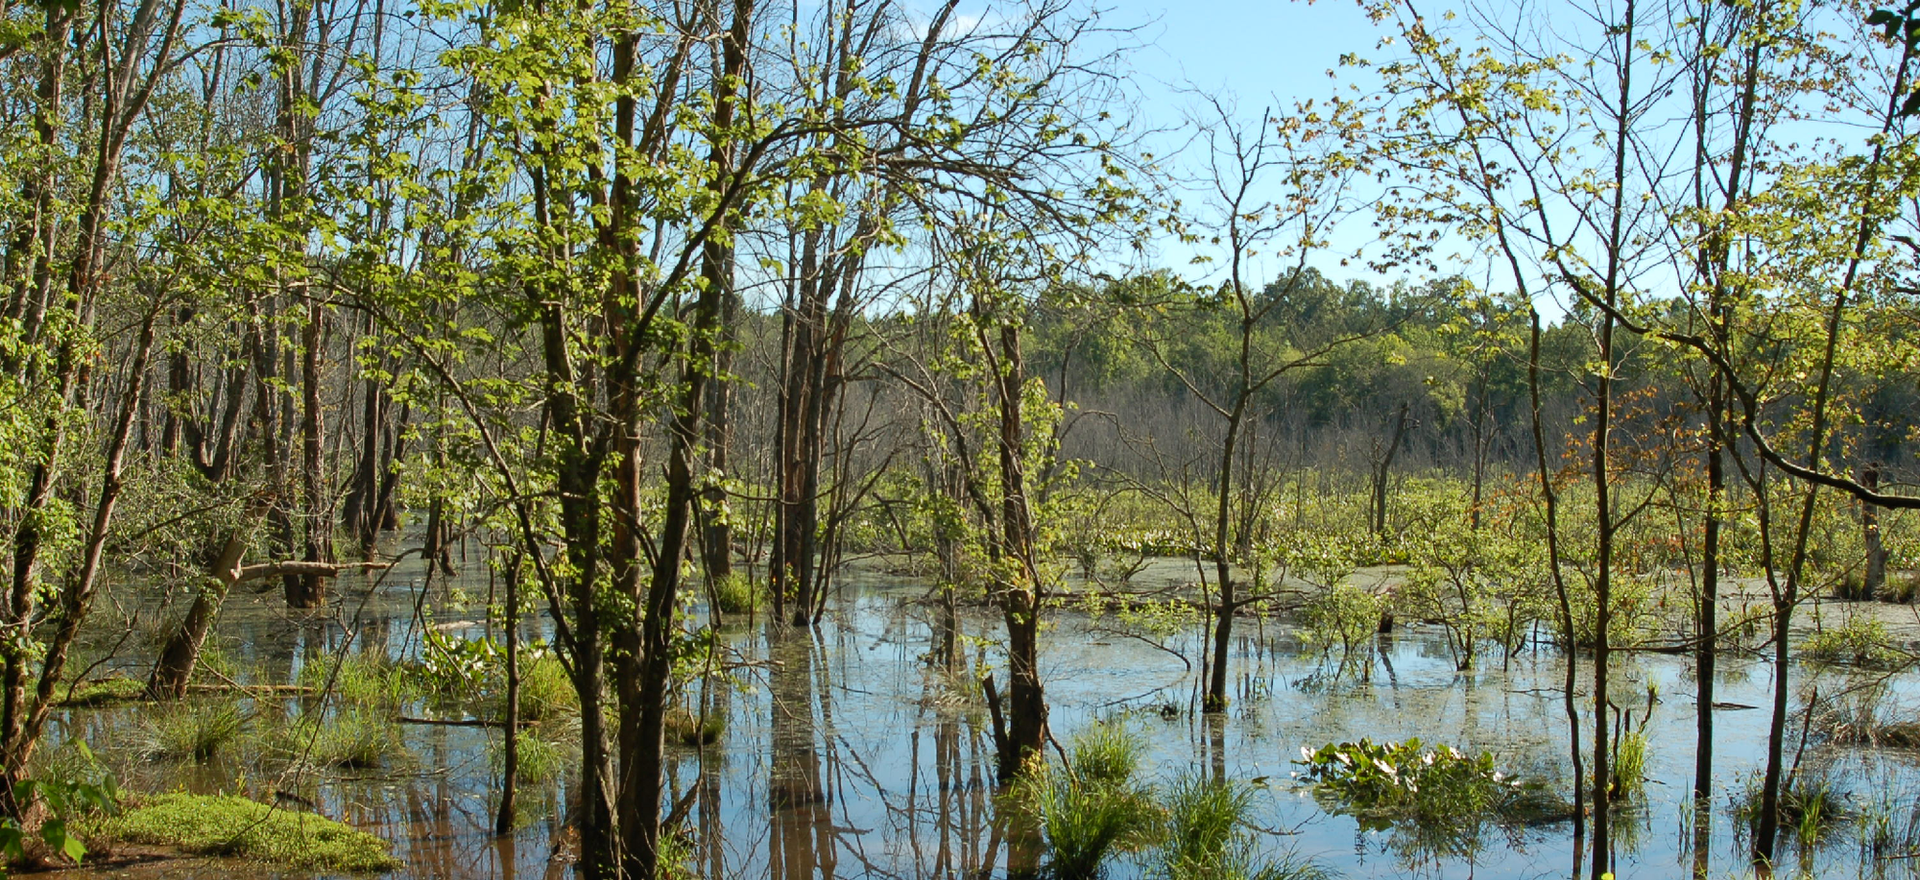 This 177-acre  property owned by Jefferson City schools is used to help educate students about wetland ecosystems. Made up almost entirely of bottomland hardwood forests, swamps, marshes, and open water on both sides of the Middle Oconee River, it provides excellent habitat for beavers, otters, wading birds, and songbirds and even contains a small heron rookery.